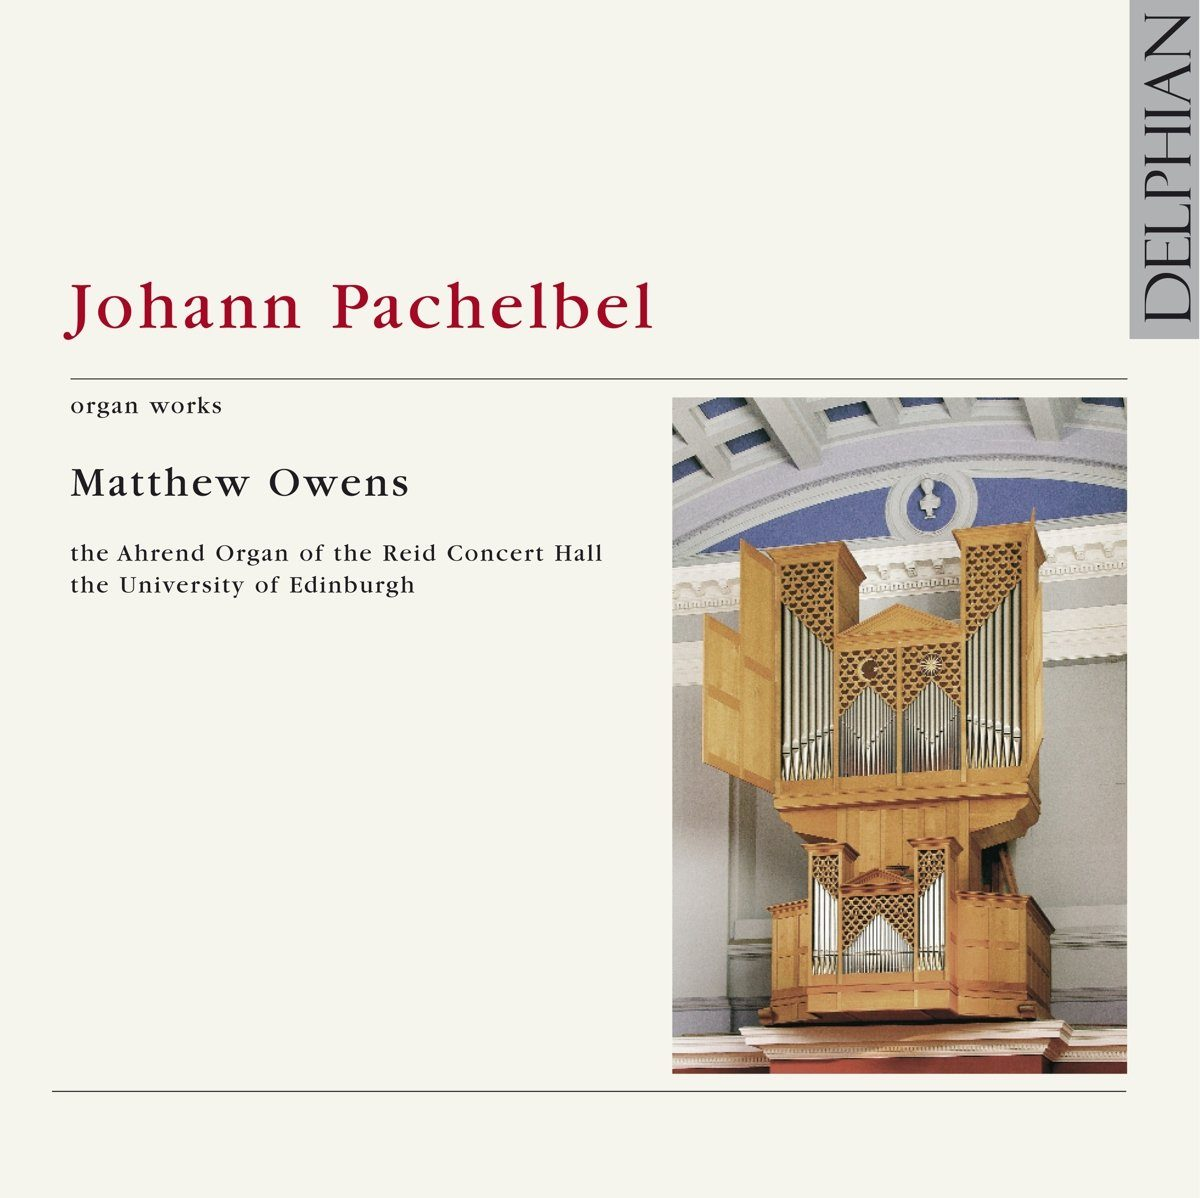 Pachelbel: Organ Works CD Delphian Records